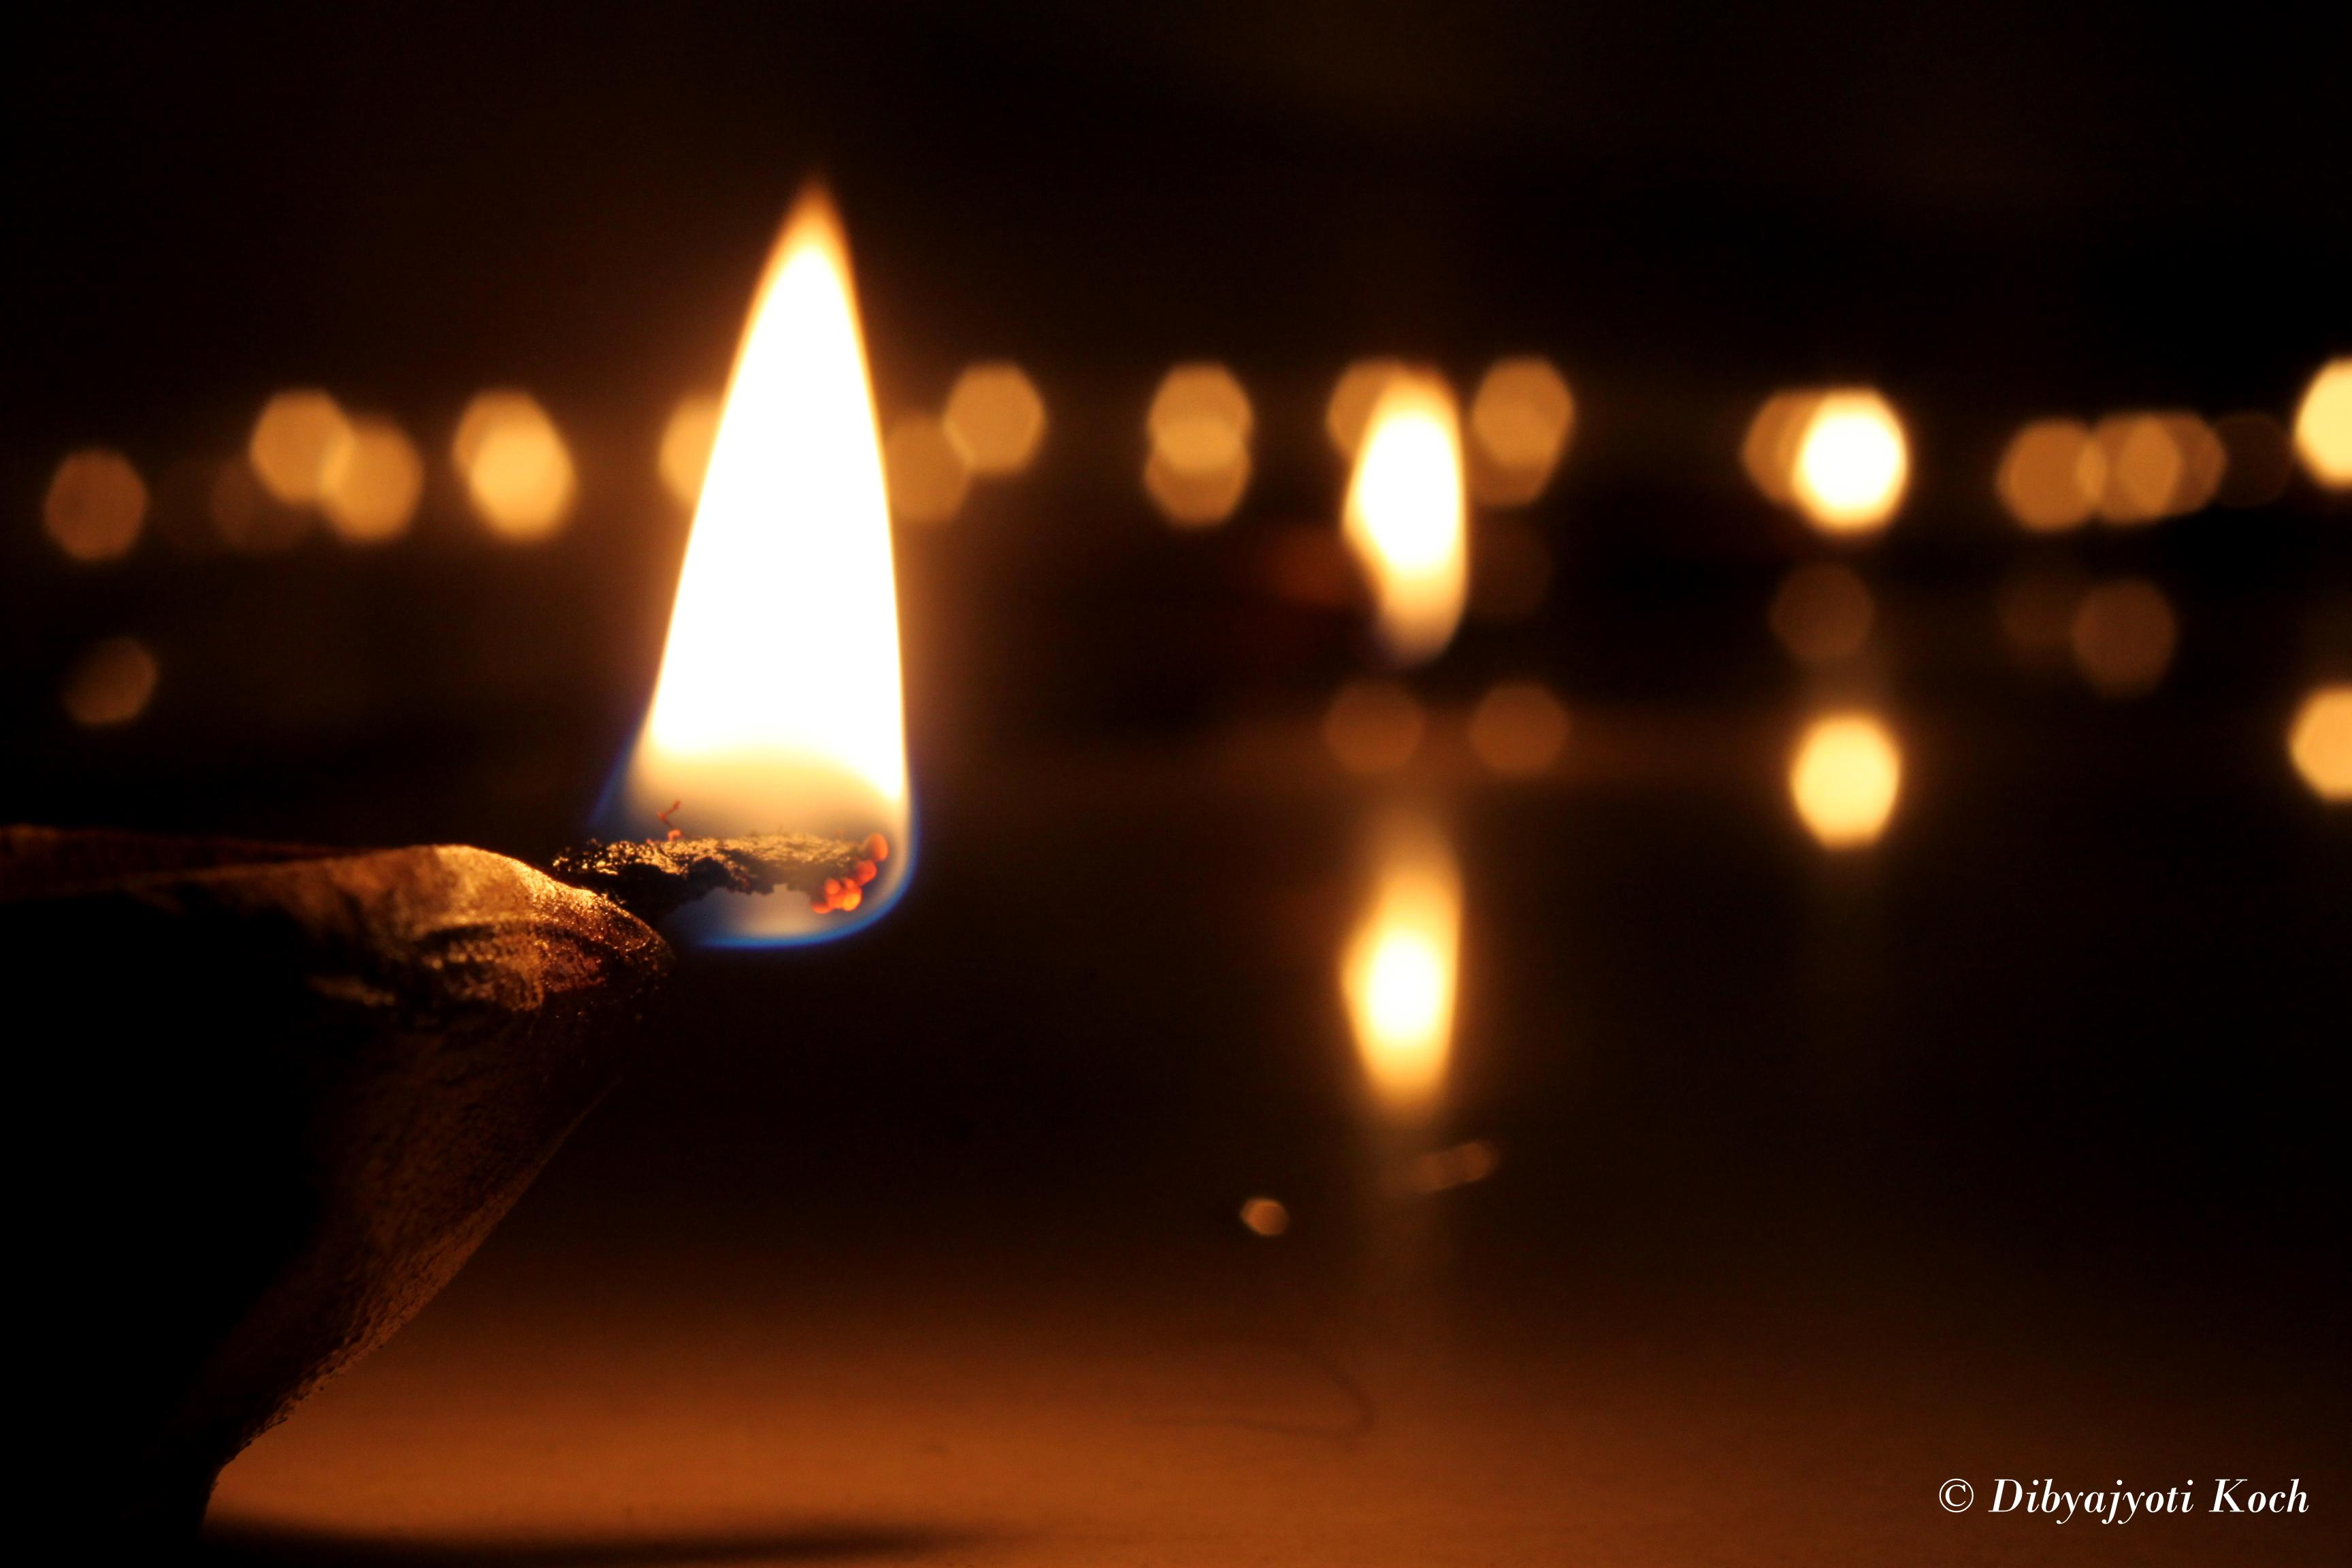 very short essay on diwali festival Article shared by diwali is one the most important festival of hindus it is  celebrated with great enthusiasm throughout the length and breadth of india it is  a.